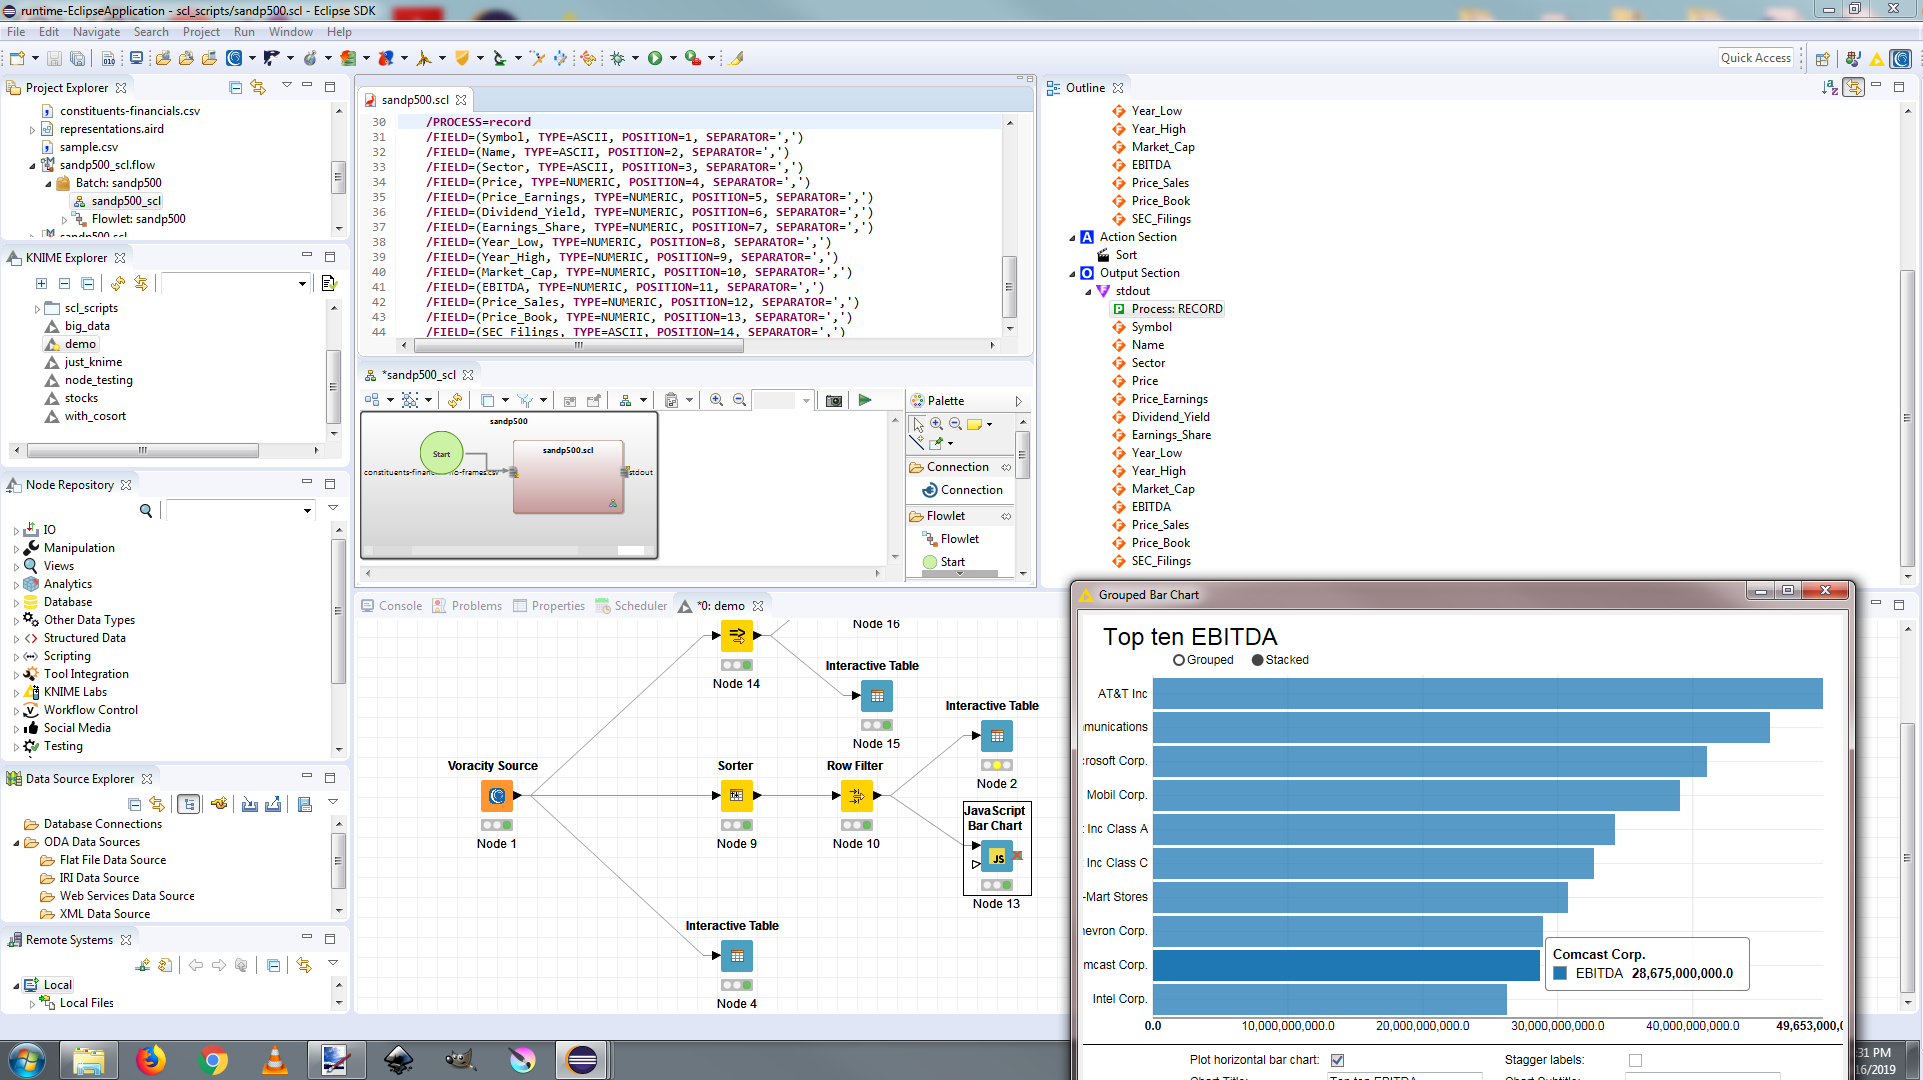 Voracity Data Wrangling & KNIME Analytic Workflows in IRI Workbench, Built on Eclipse